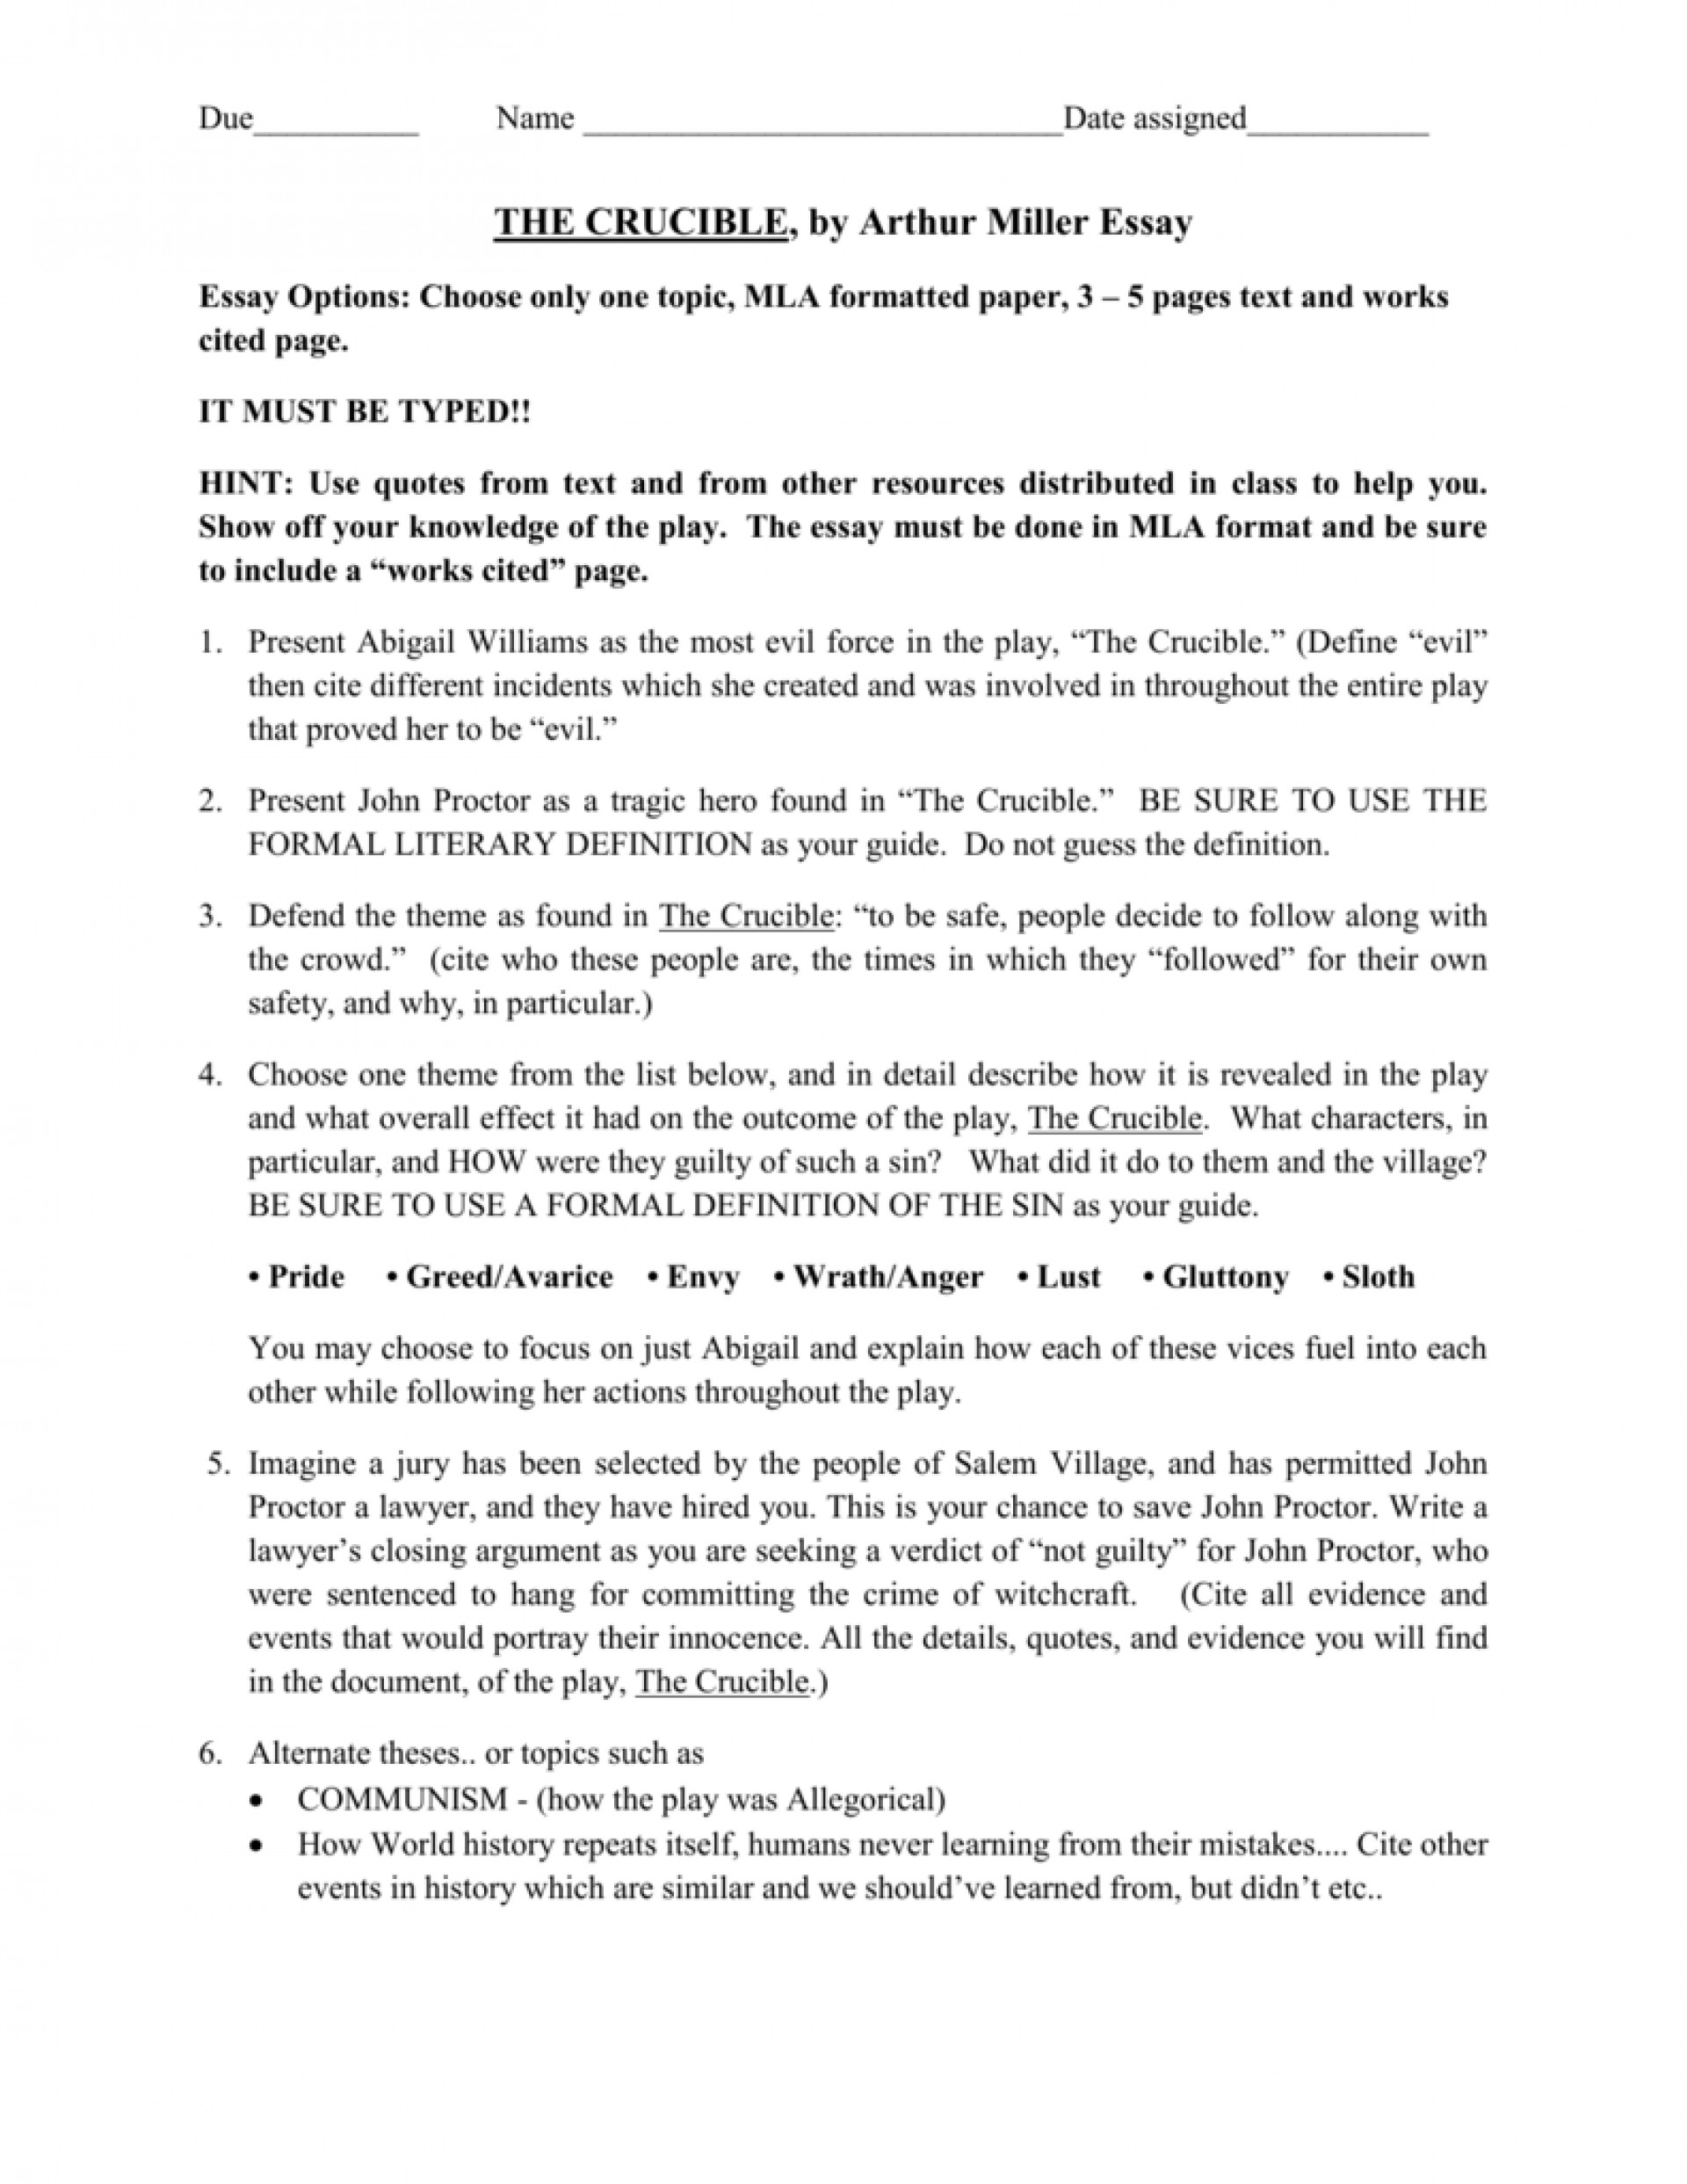 013 Essay Example The Crucible Topics 008038870 1 Shocking Questions Pdf Persuasive Prompts Literature 1920